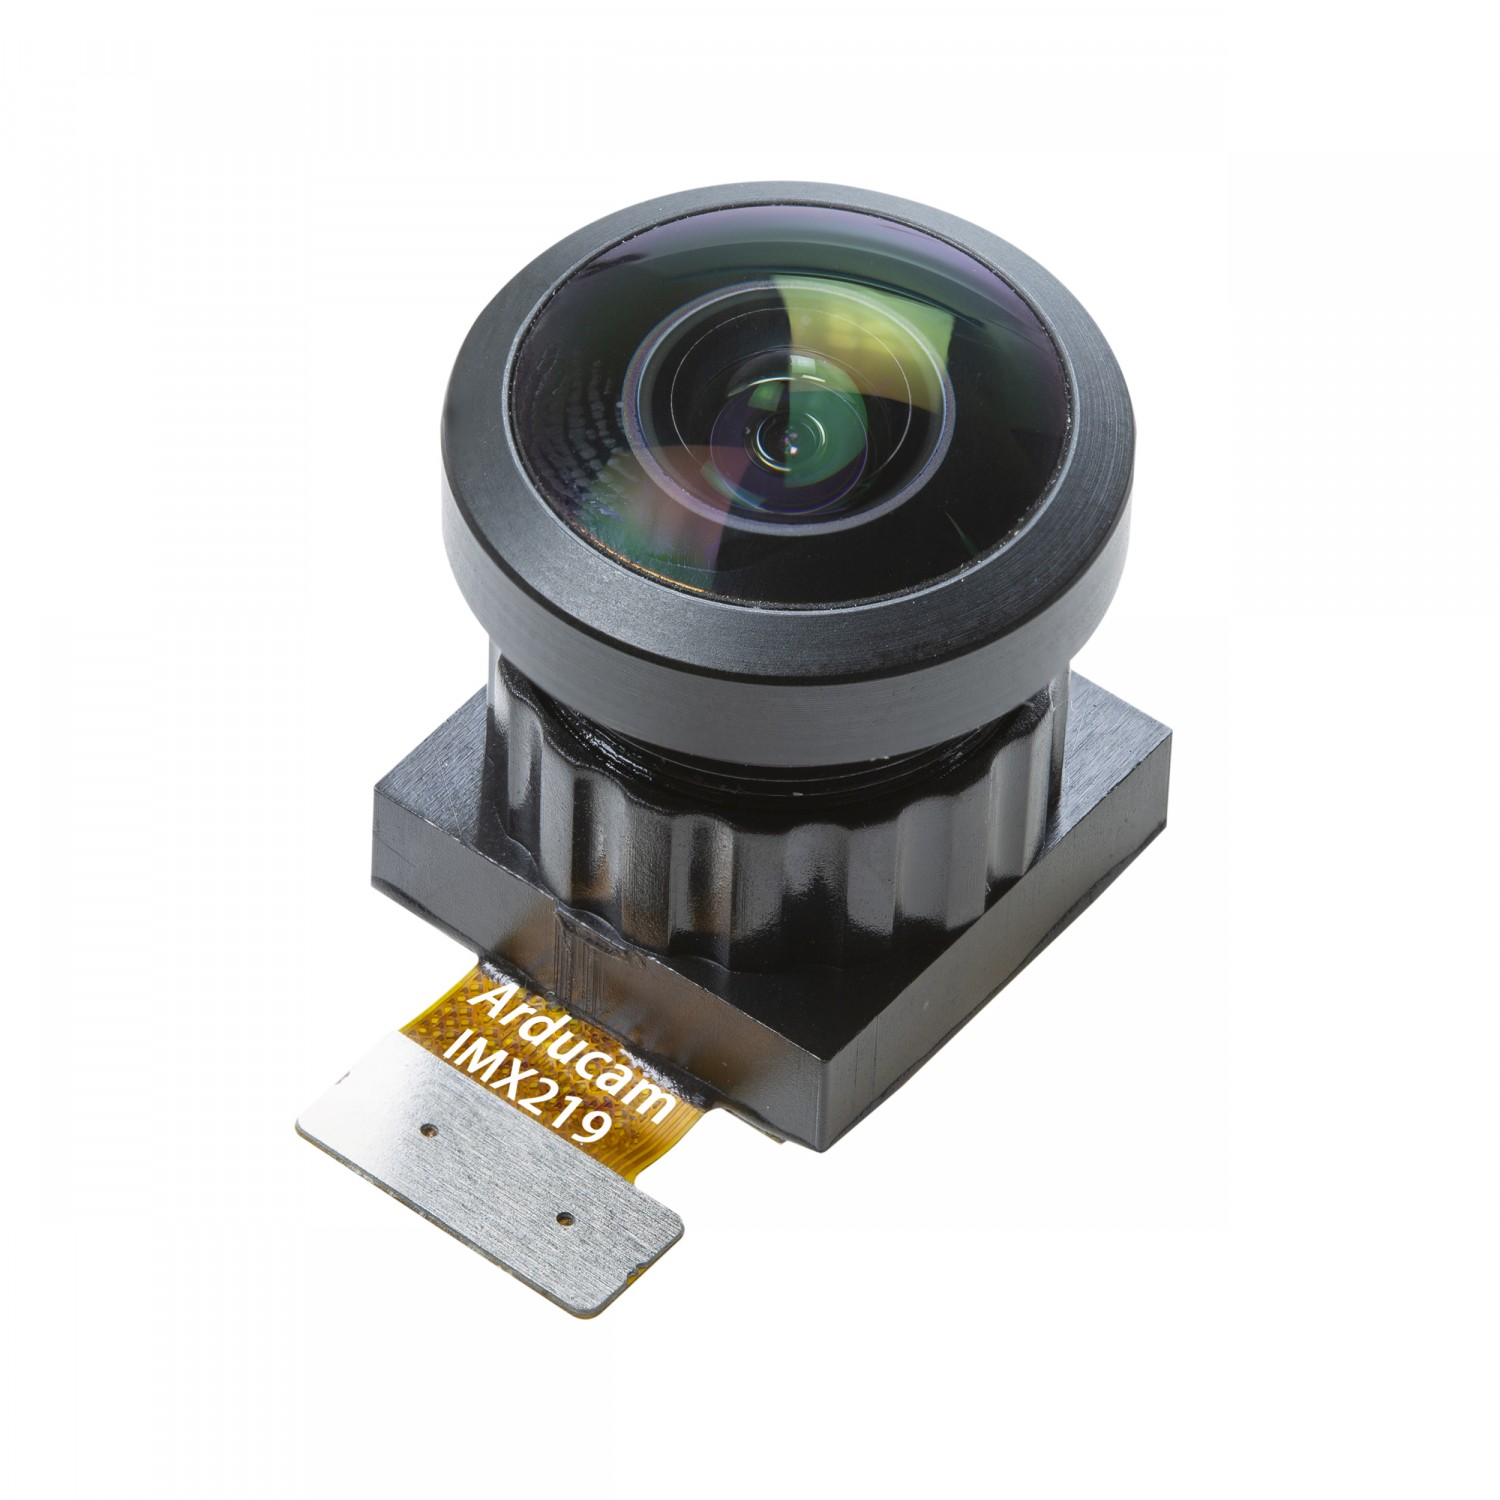 Arducam IMX219 Wide Angle Camera Module, drop in replacement for